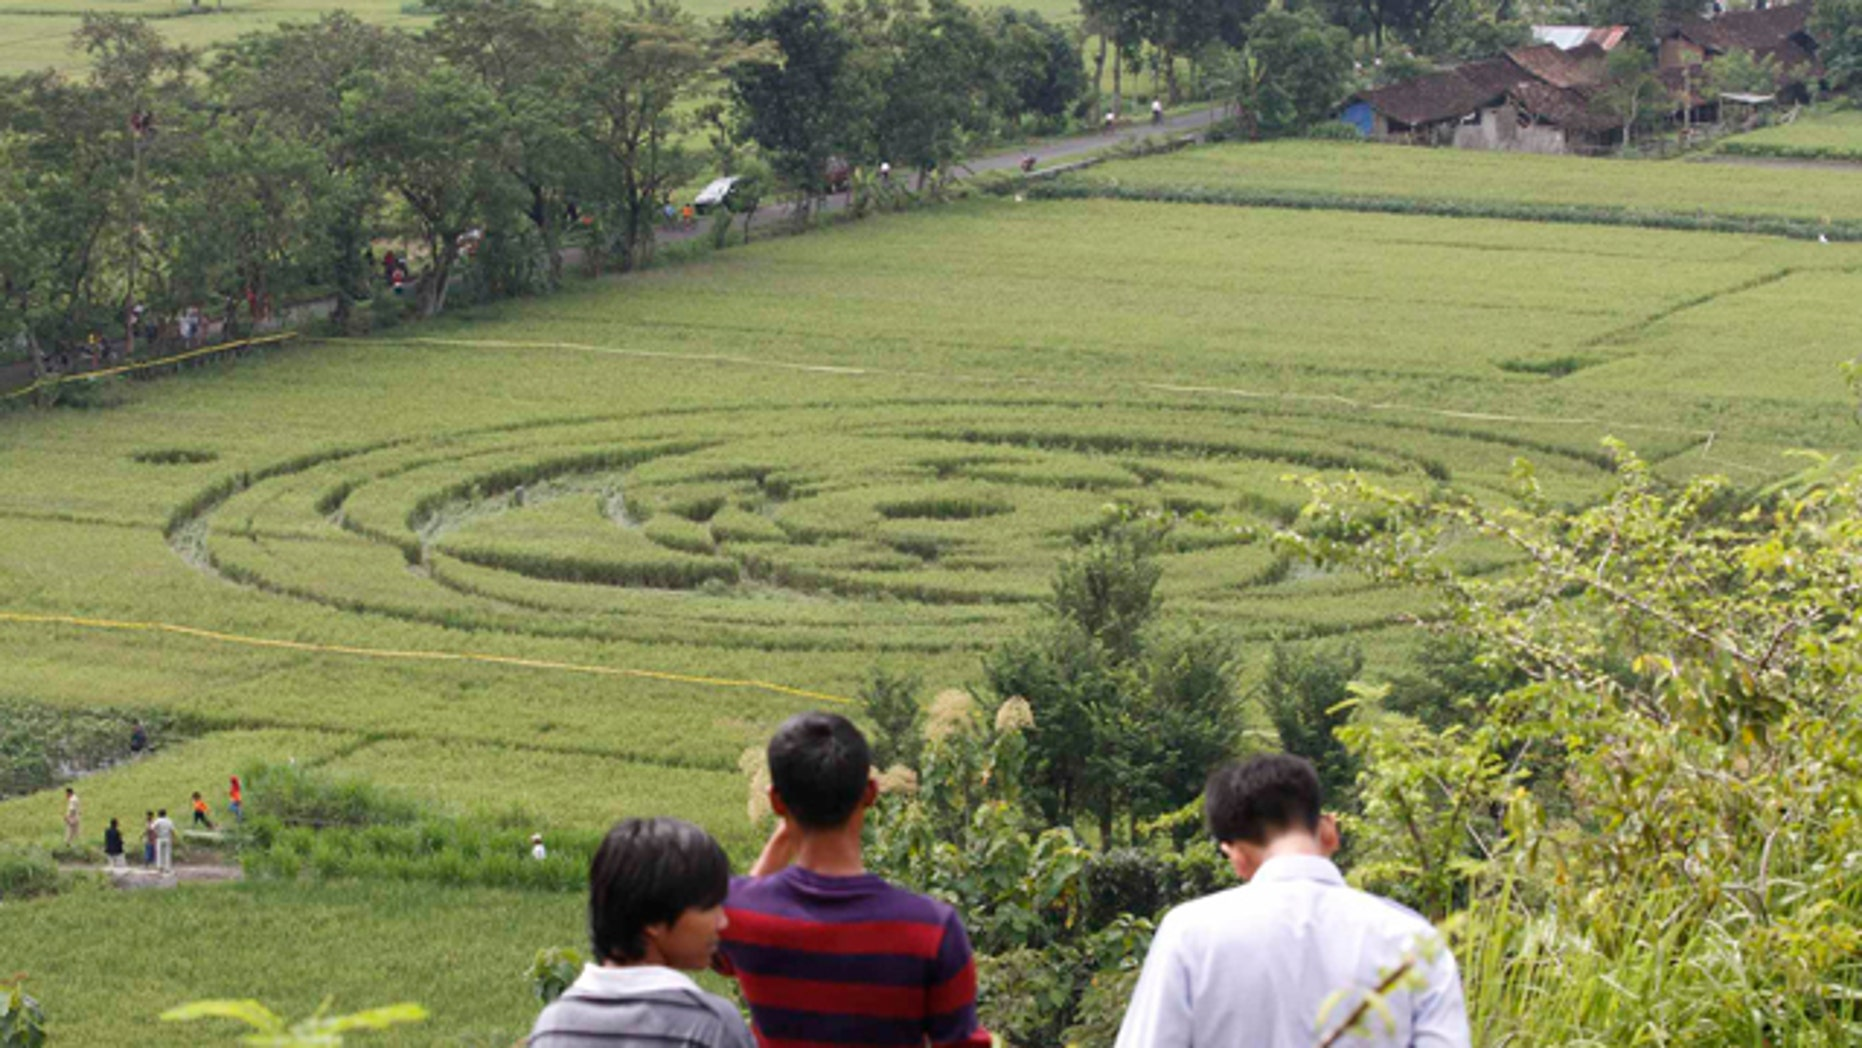 The work of aliens? Indonesia's first crop circle has left many wondering -- but scientists remain skeptical.